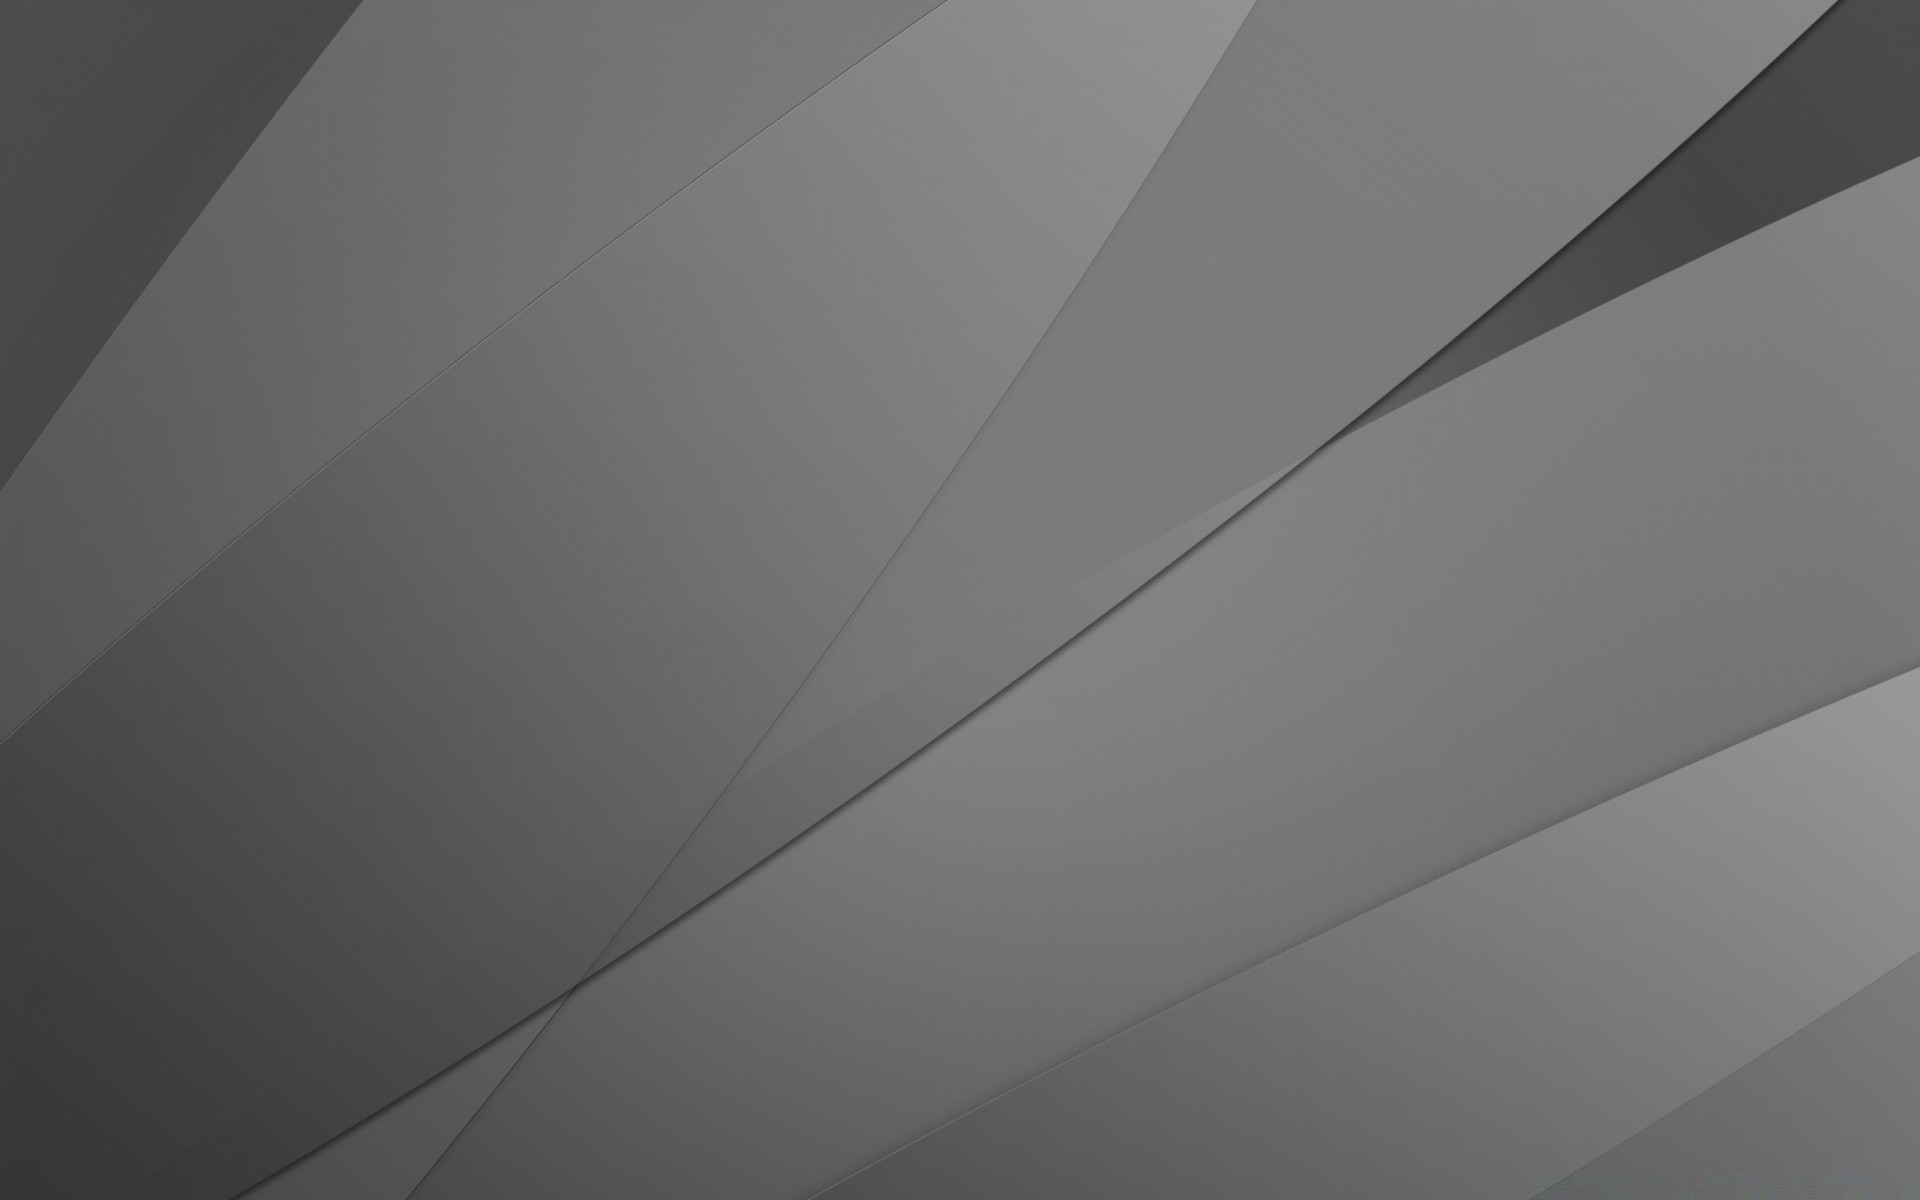 Abstract Graphic Design Gray Android Wallpapers For Free